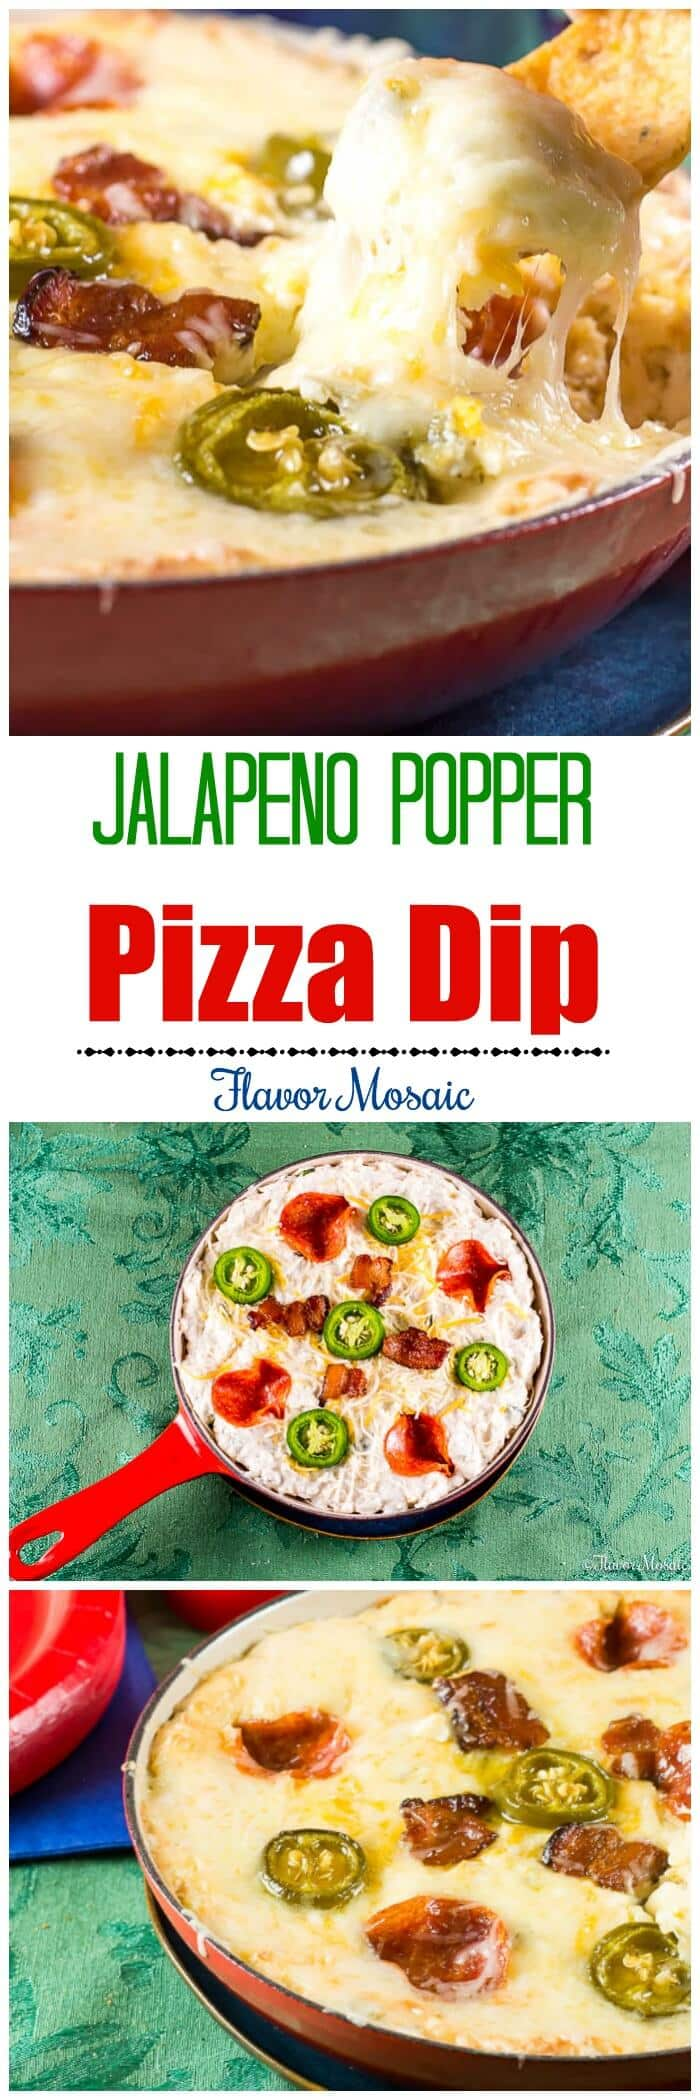 Jalapeno Popper Pizza Dip Long Pin by Flavor Mosaic